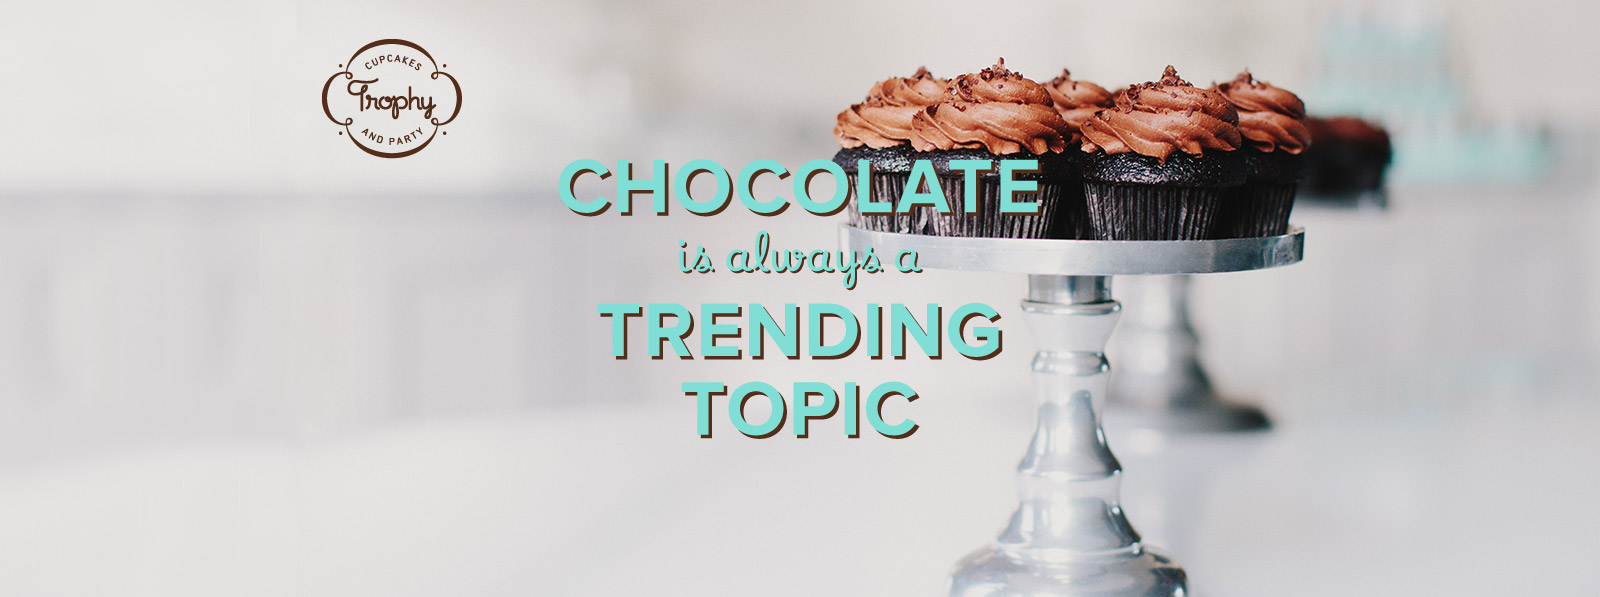 Chocolate is always a trending topic